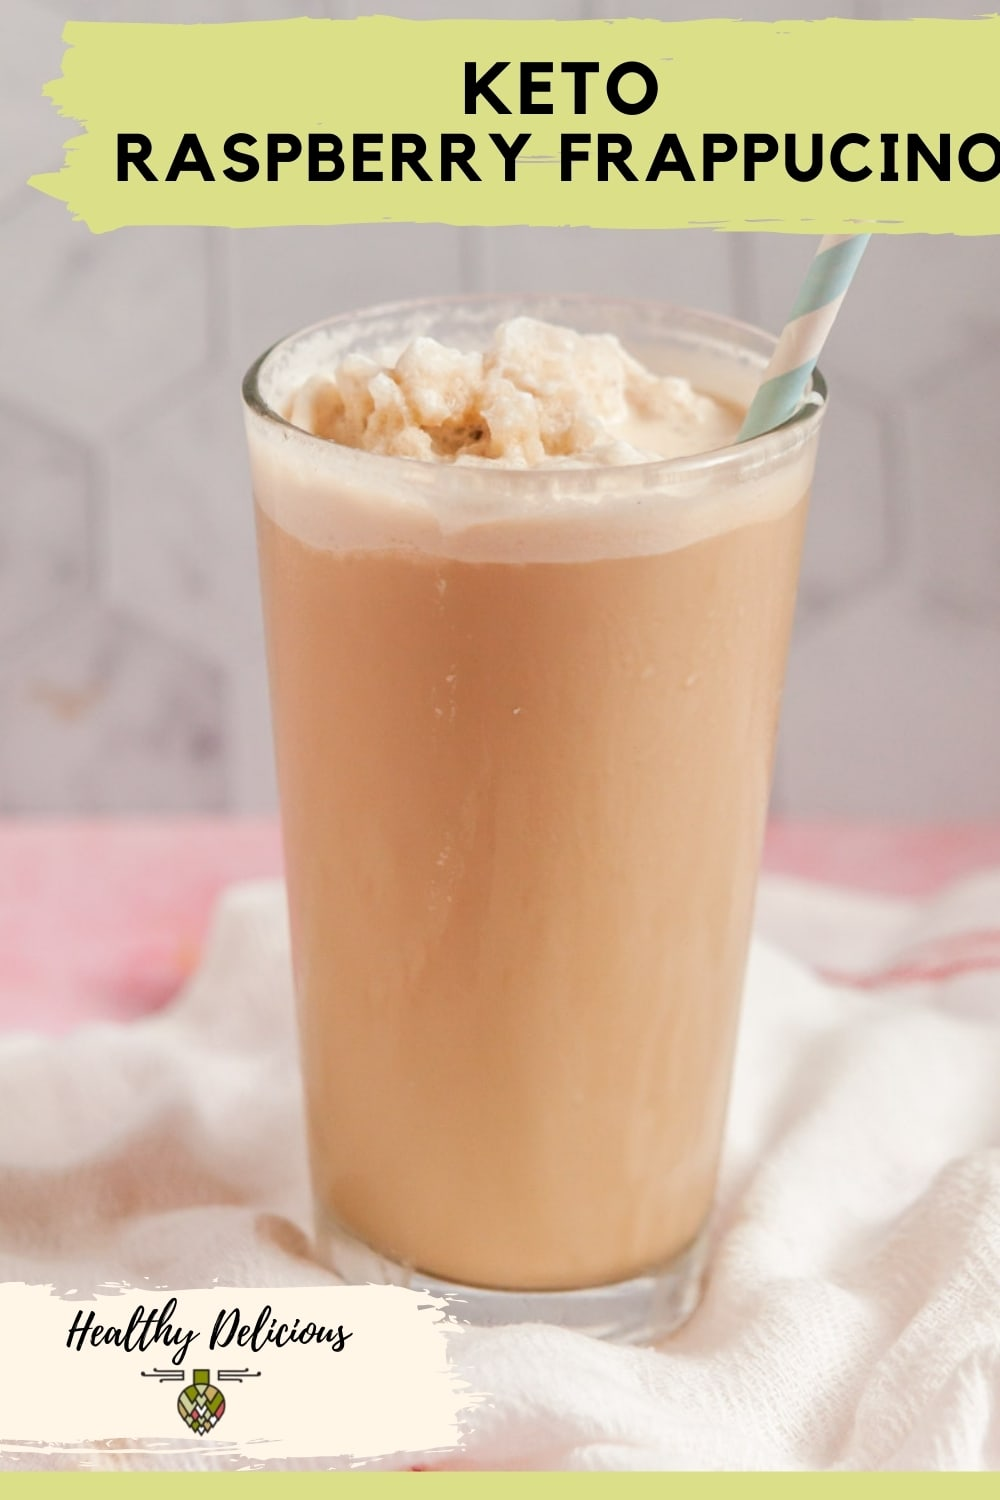 Frozen coffee is so easy to make at home and this keto version only has 2 net carbs! You'll love this raspberry frappucino copycat recipe when you need a cold treat this summer! via @HealthyDelish